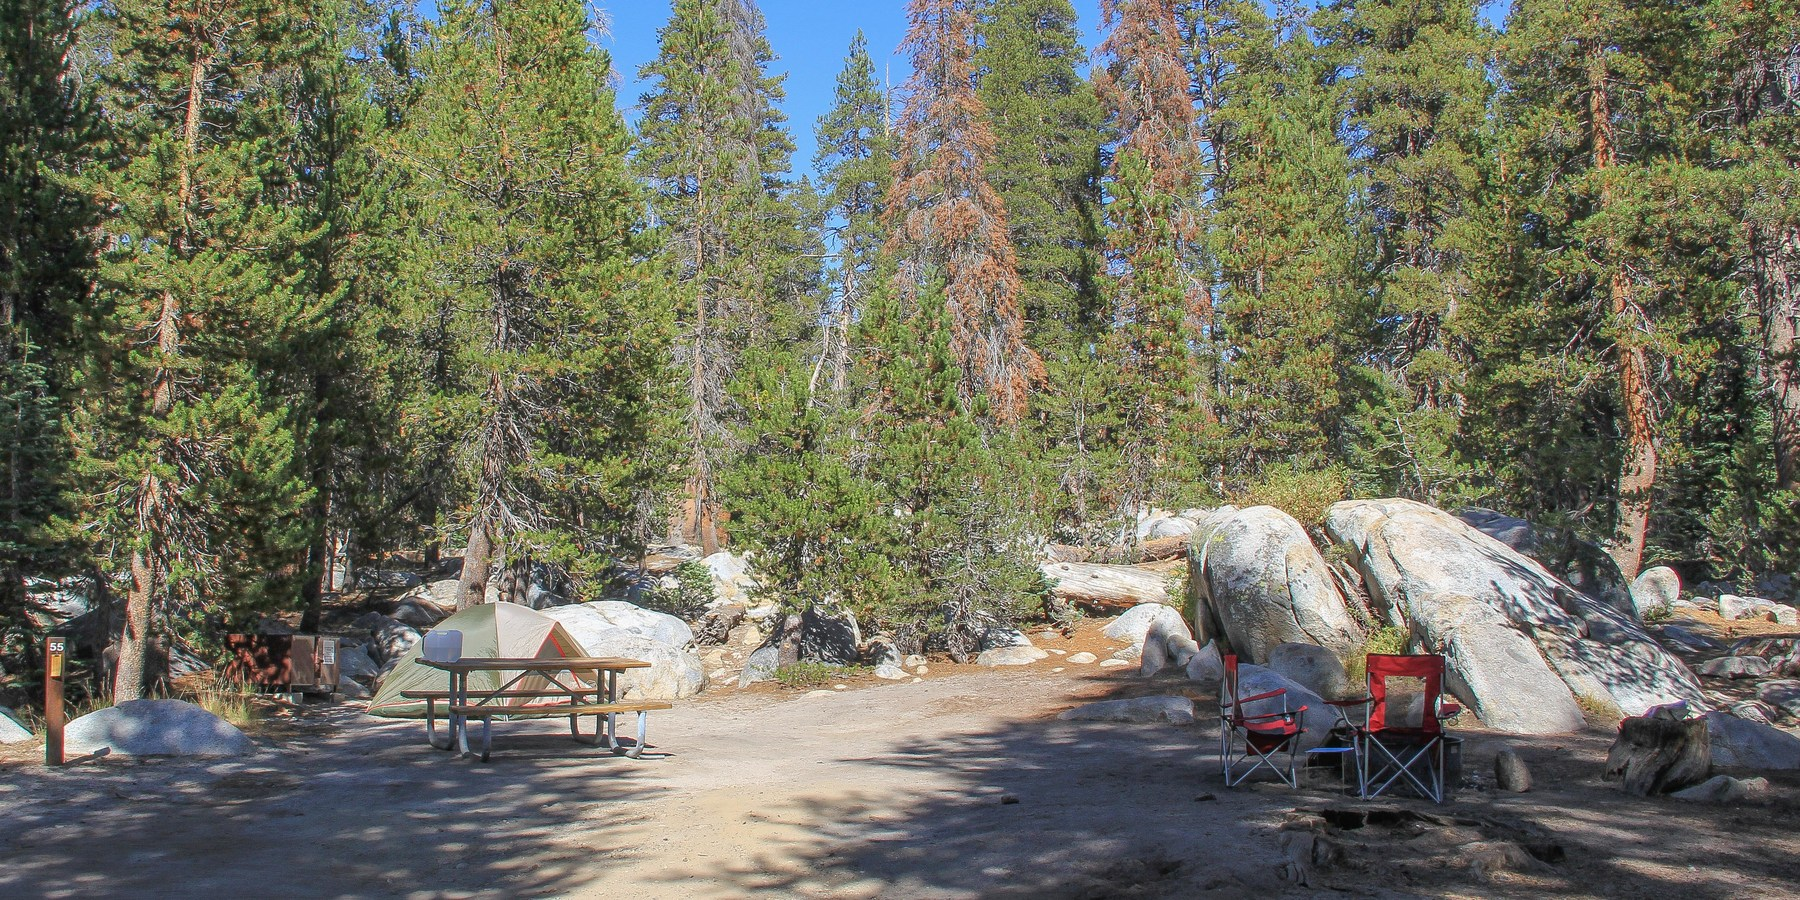 Guide to camping in yosemite national park outdoor project for Yosemite park camping cabins